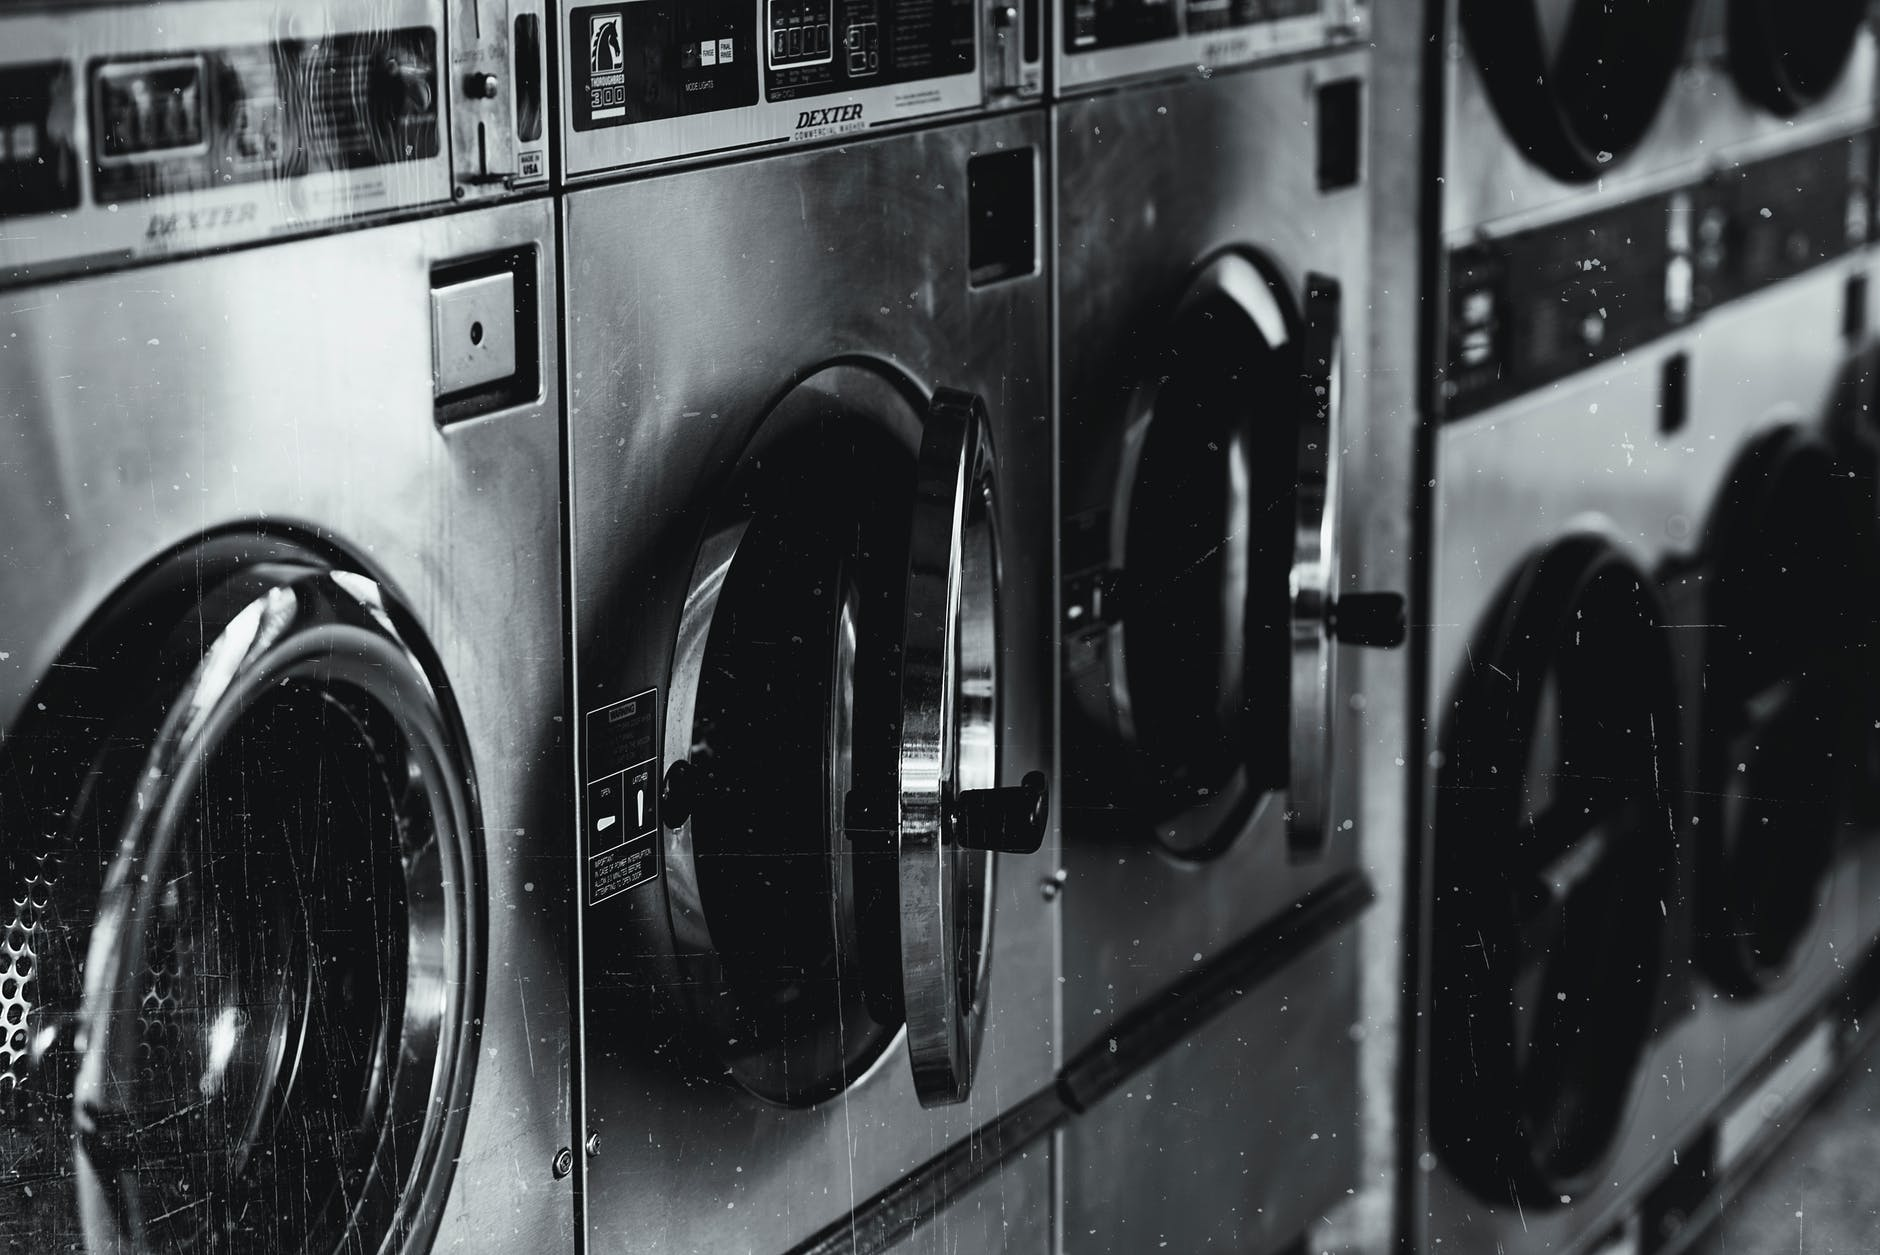 grayscale photo of washing machine